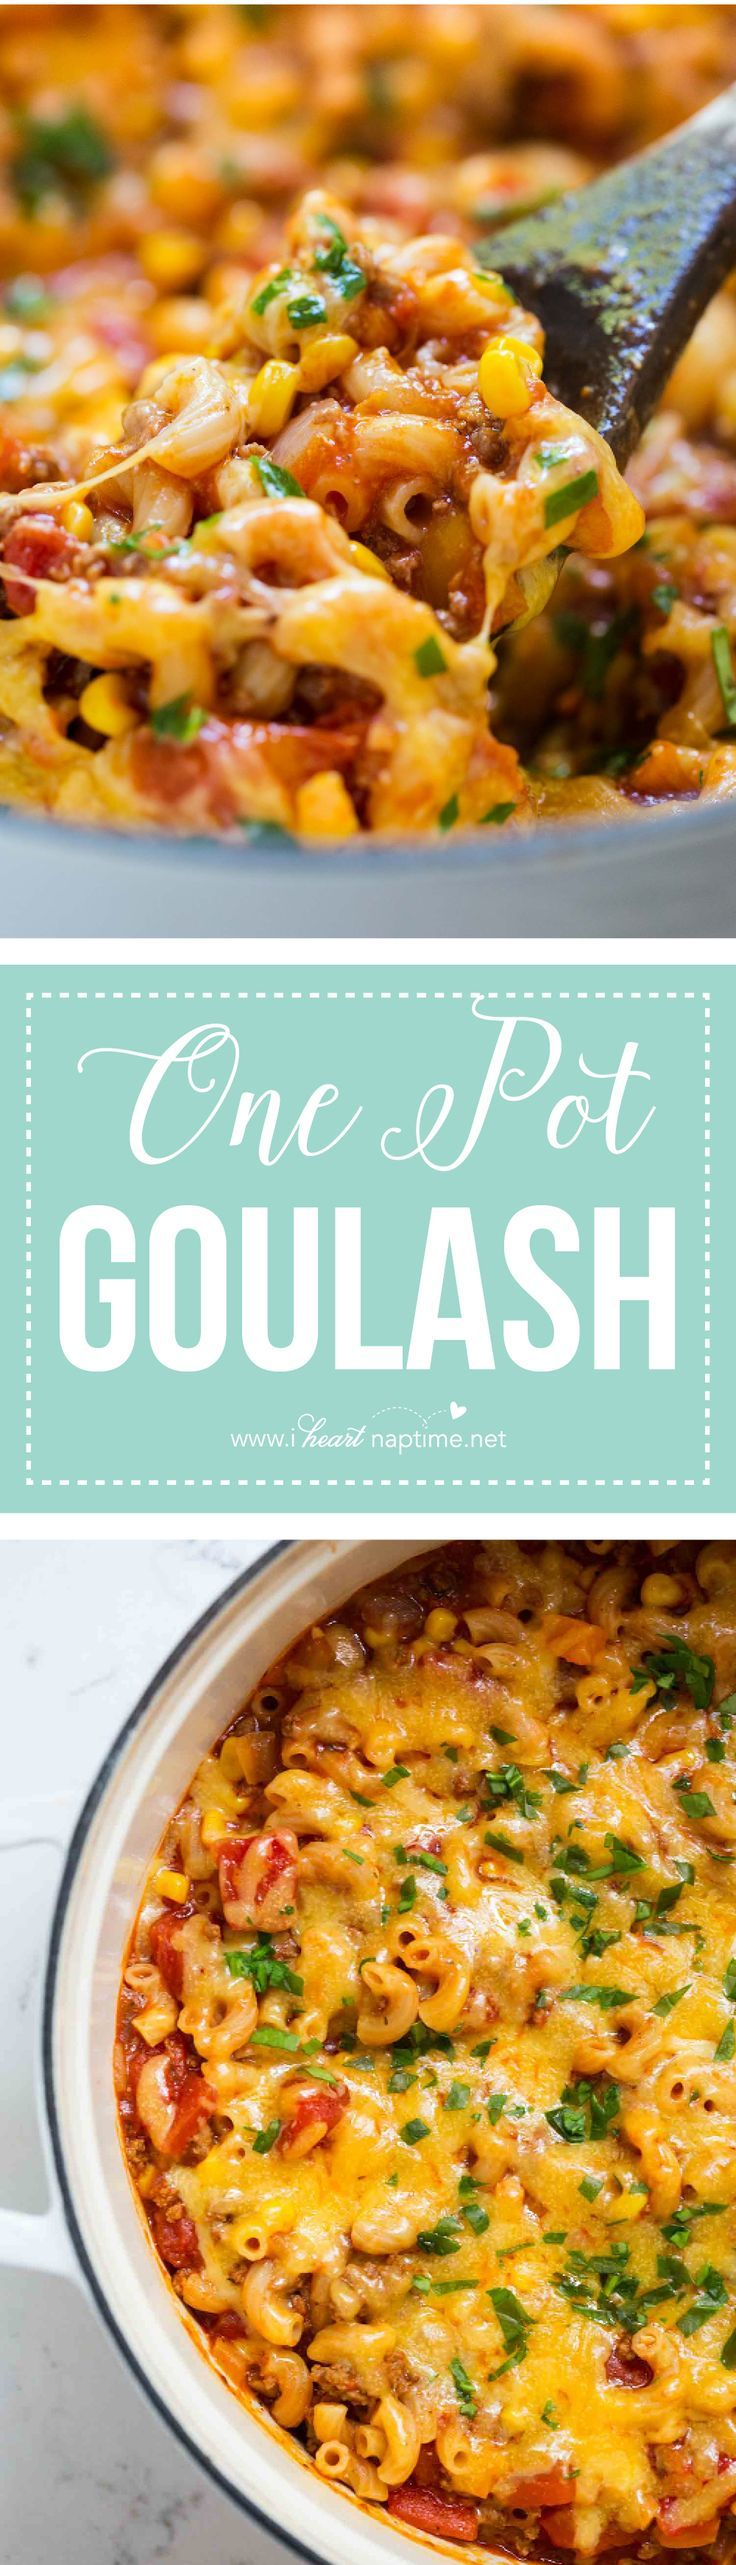 One Pot Goulash Recipe, so GOOD! Everything is made in one pot (including the noodles) and is done in 30 minutes.